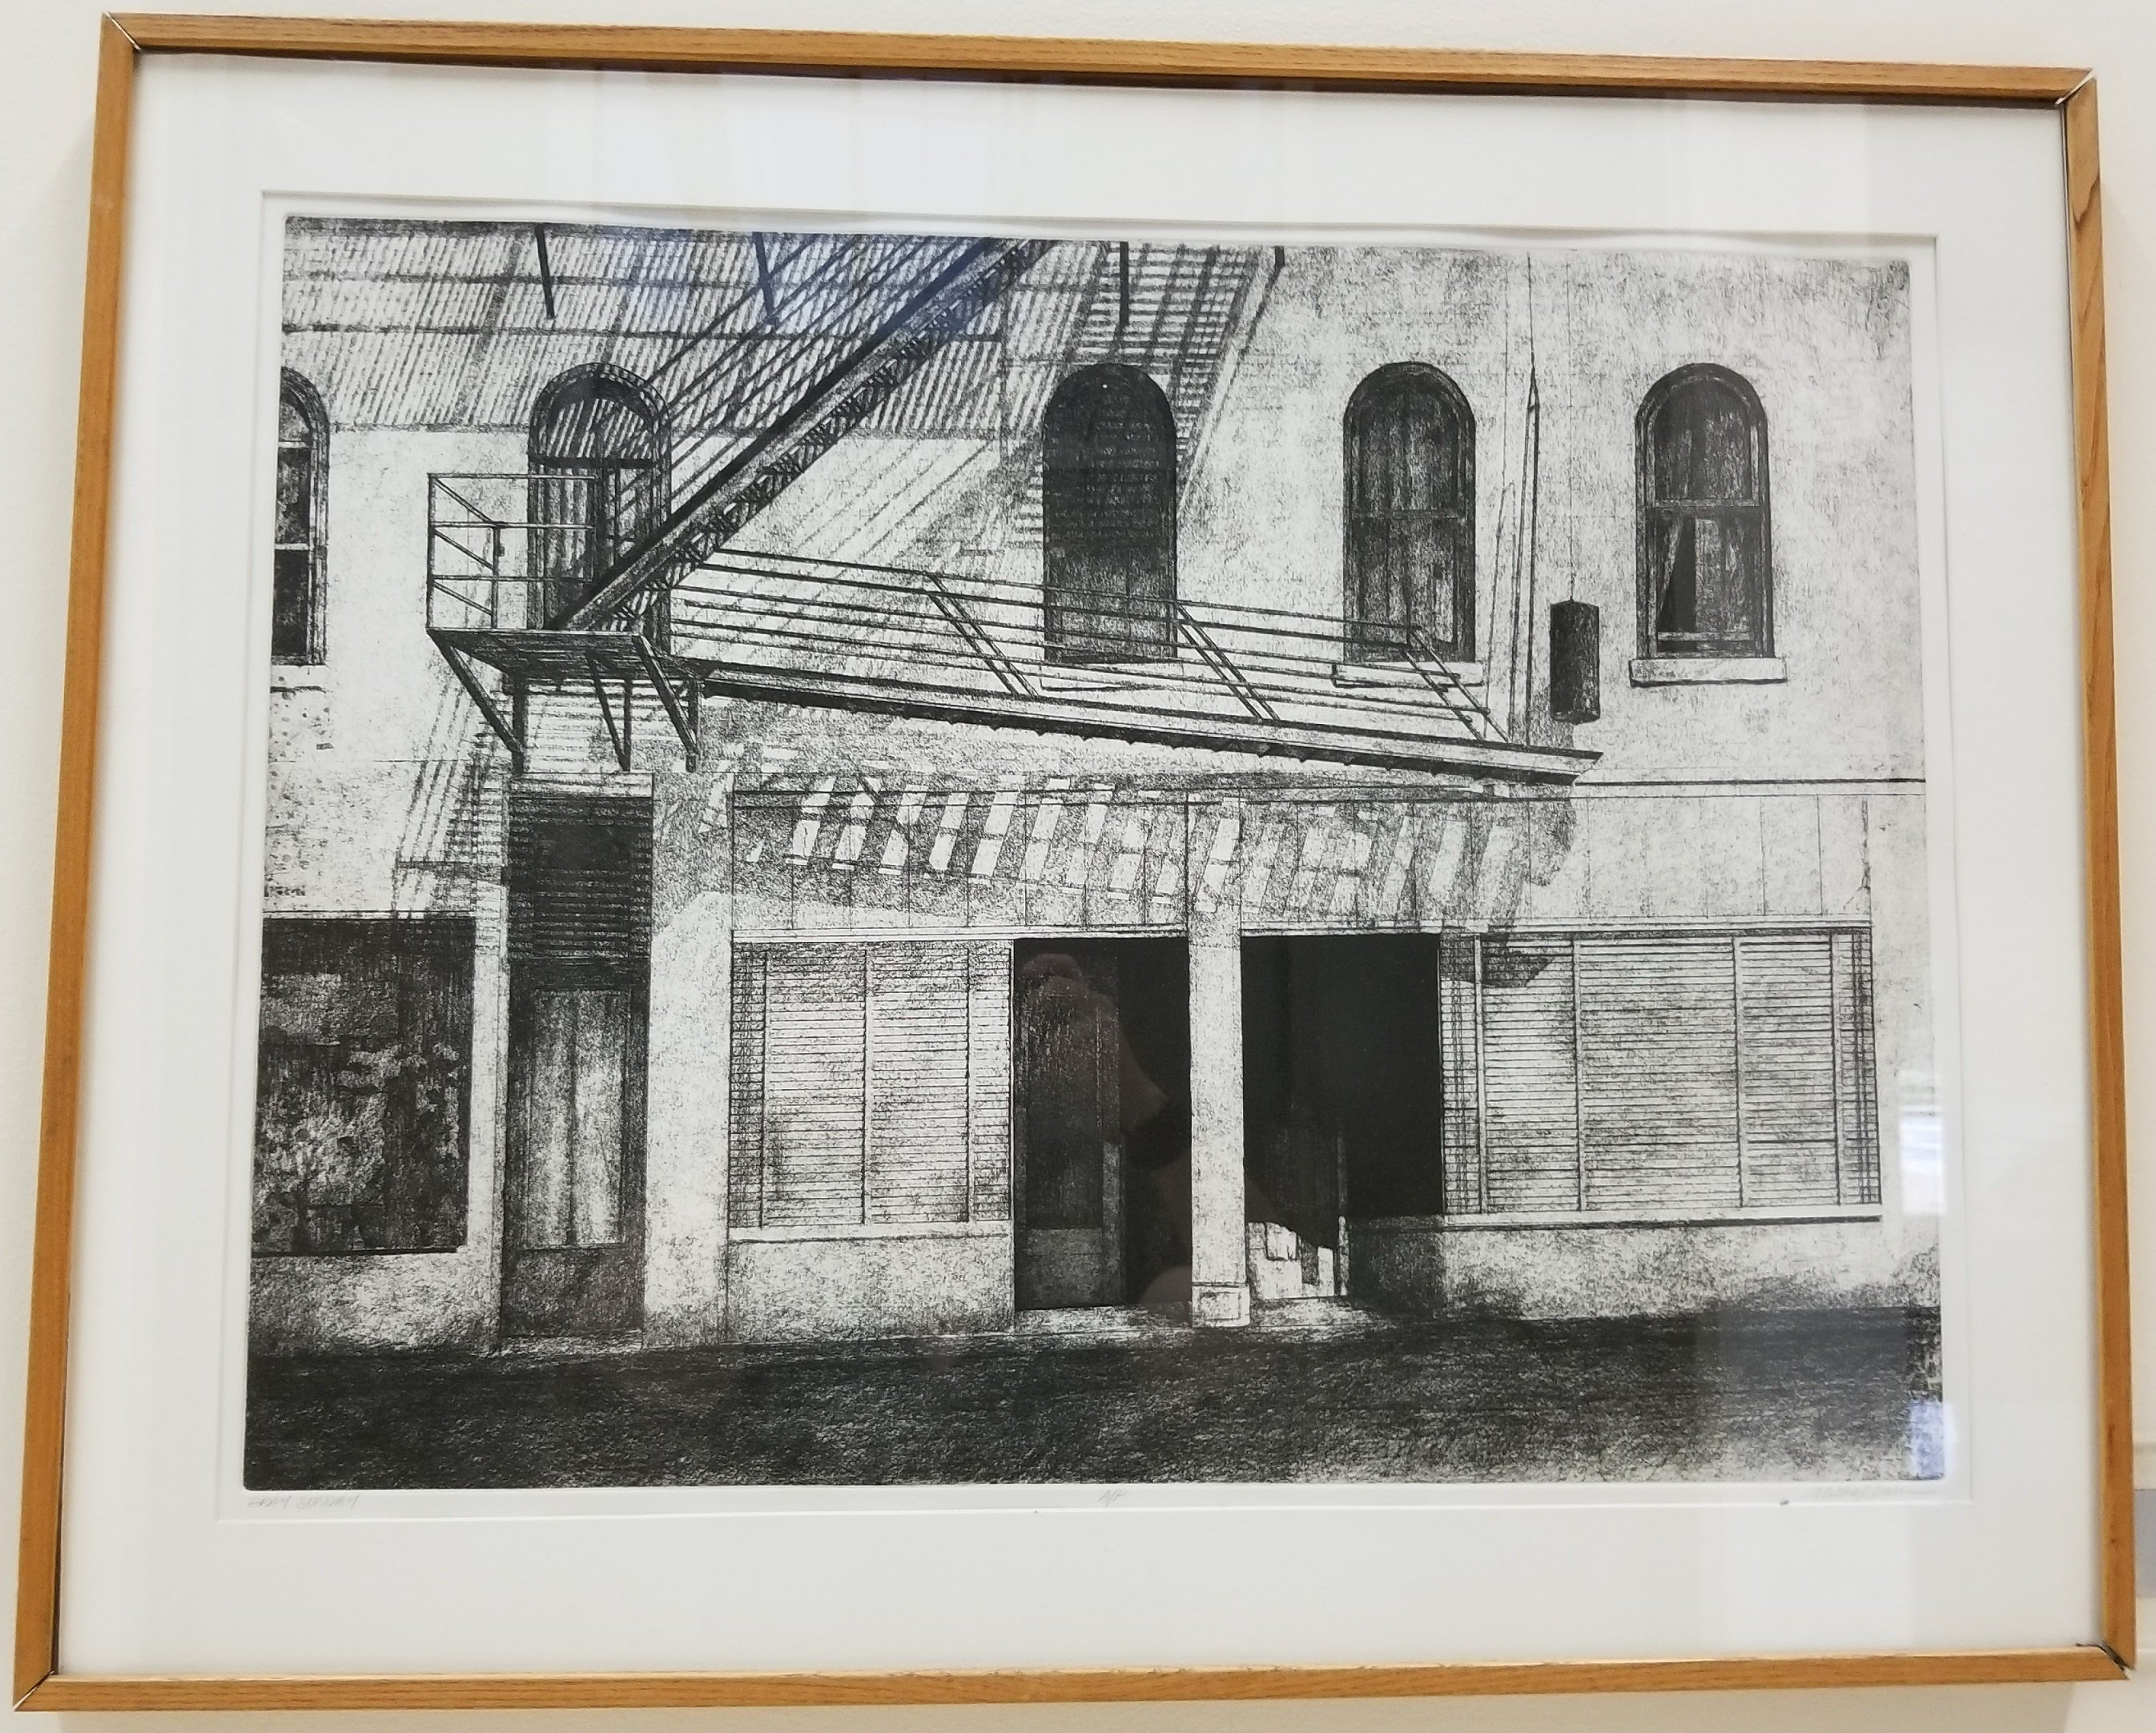 """Gray Sunday"", by Michael Morin. Lithograph. On display on the second floor of the Mountainlair down the hall to the left after coming up the main stairs. In the permanent Mountainlair Collection."